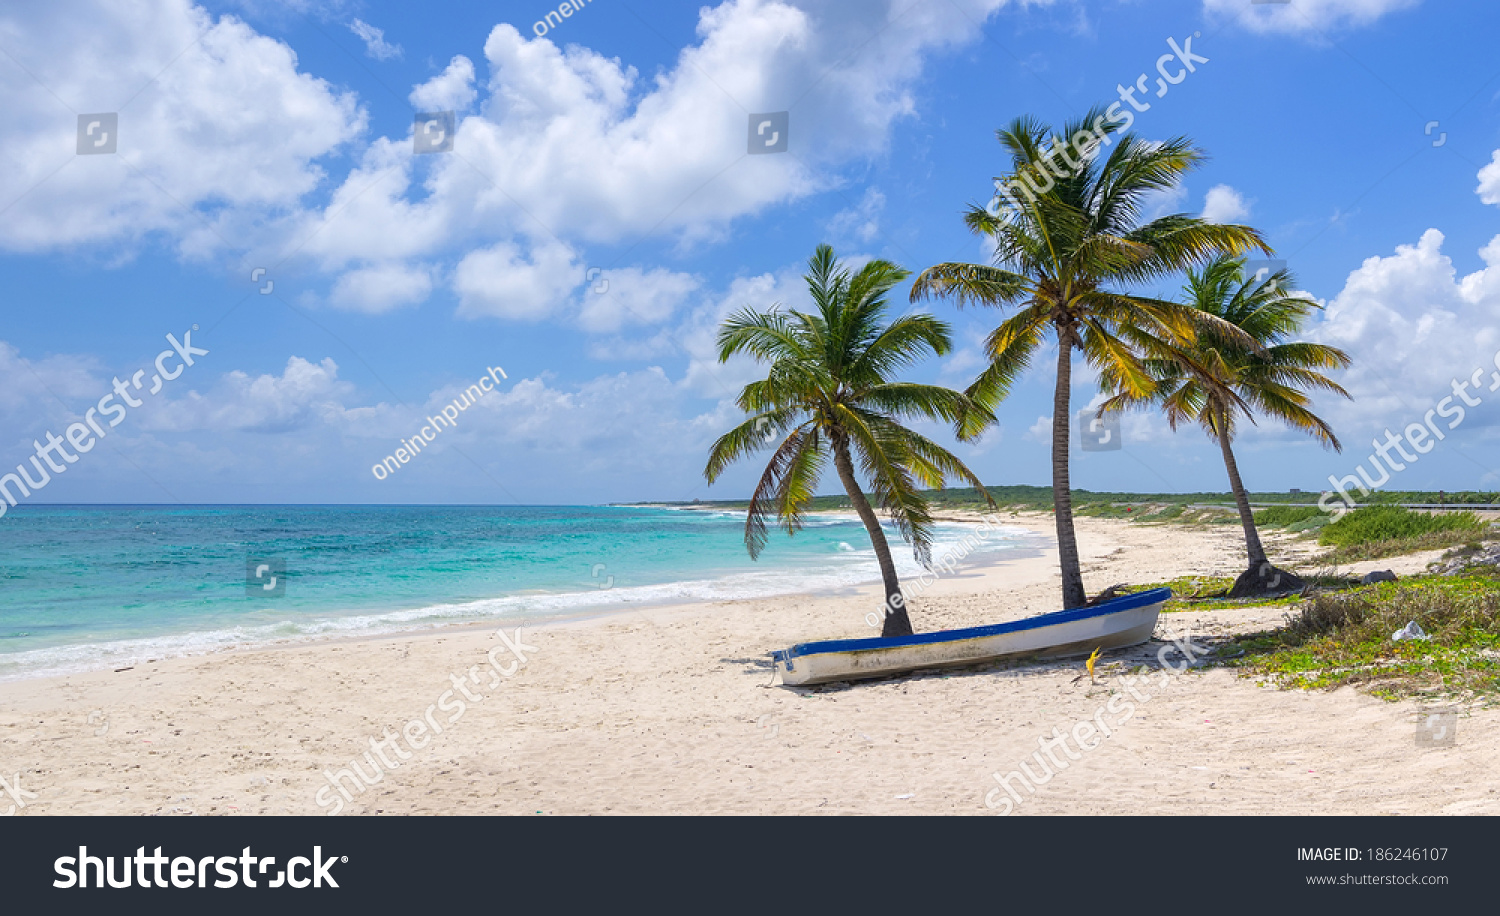 Hd Tropical Island Beach Paradise Wallpapers And Backgrounds: Tropical Beach Blue Ocean Stock Photo 186246107